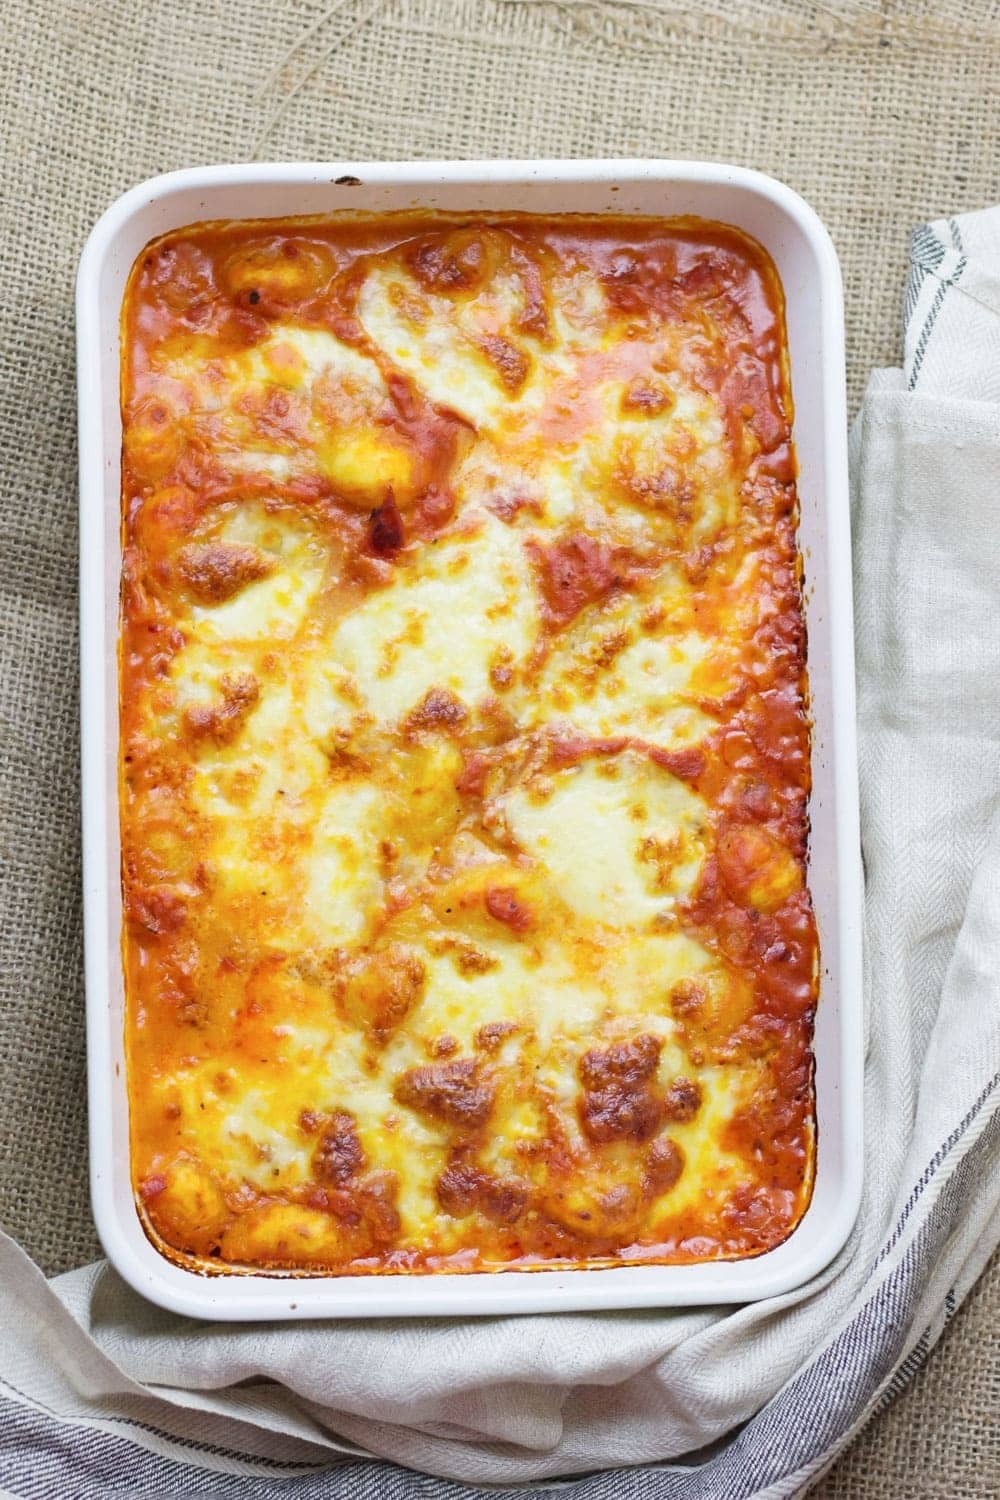 This cheese and tomato baked gnocchi is the perfect comfort dinner! Serve up a bowlful when you need a pick-me-up and you'll feel better in no time.